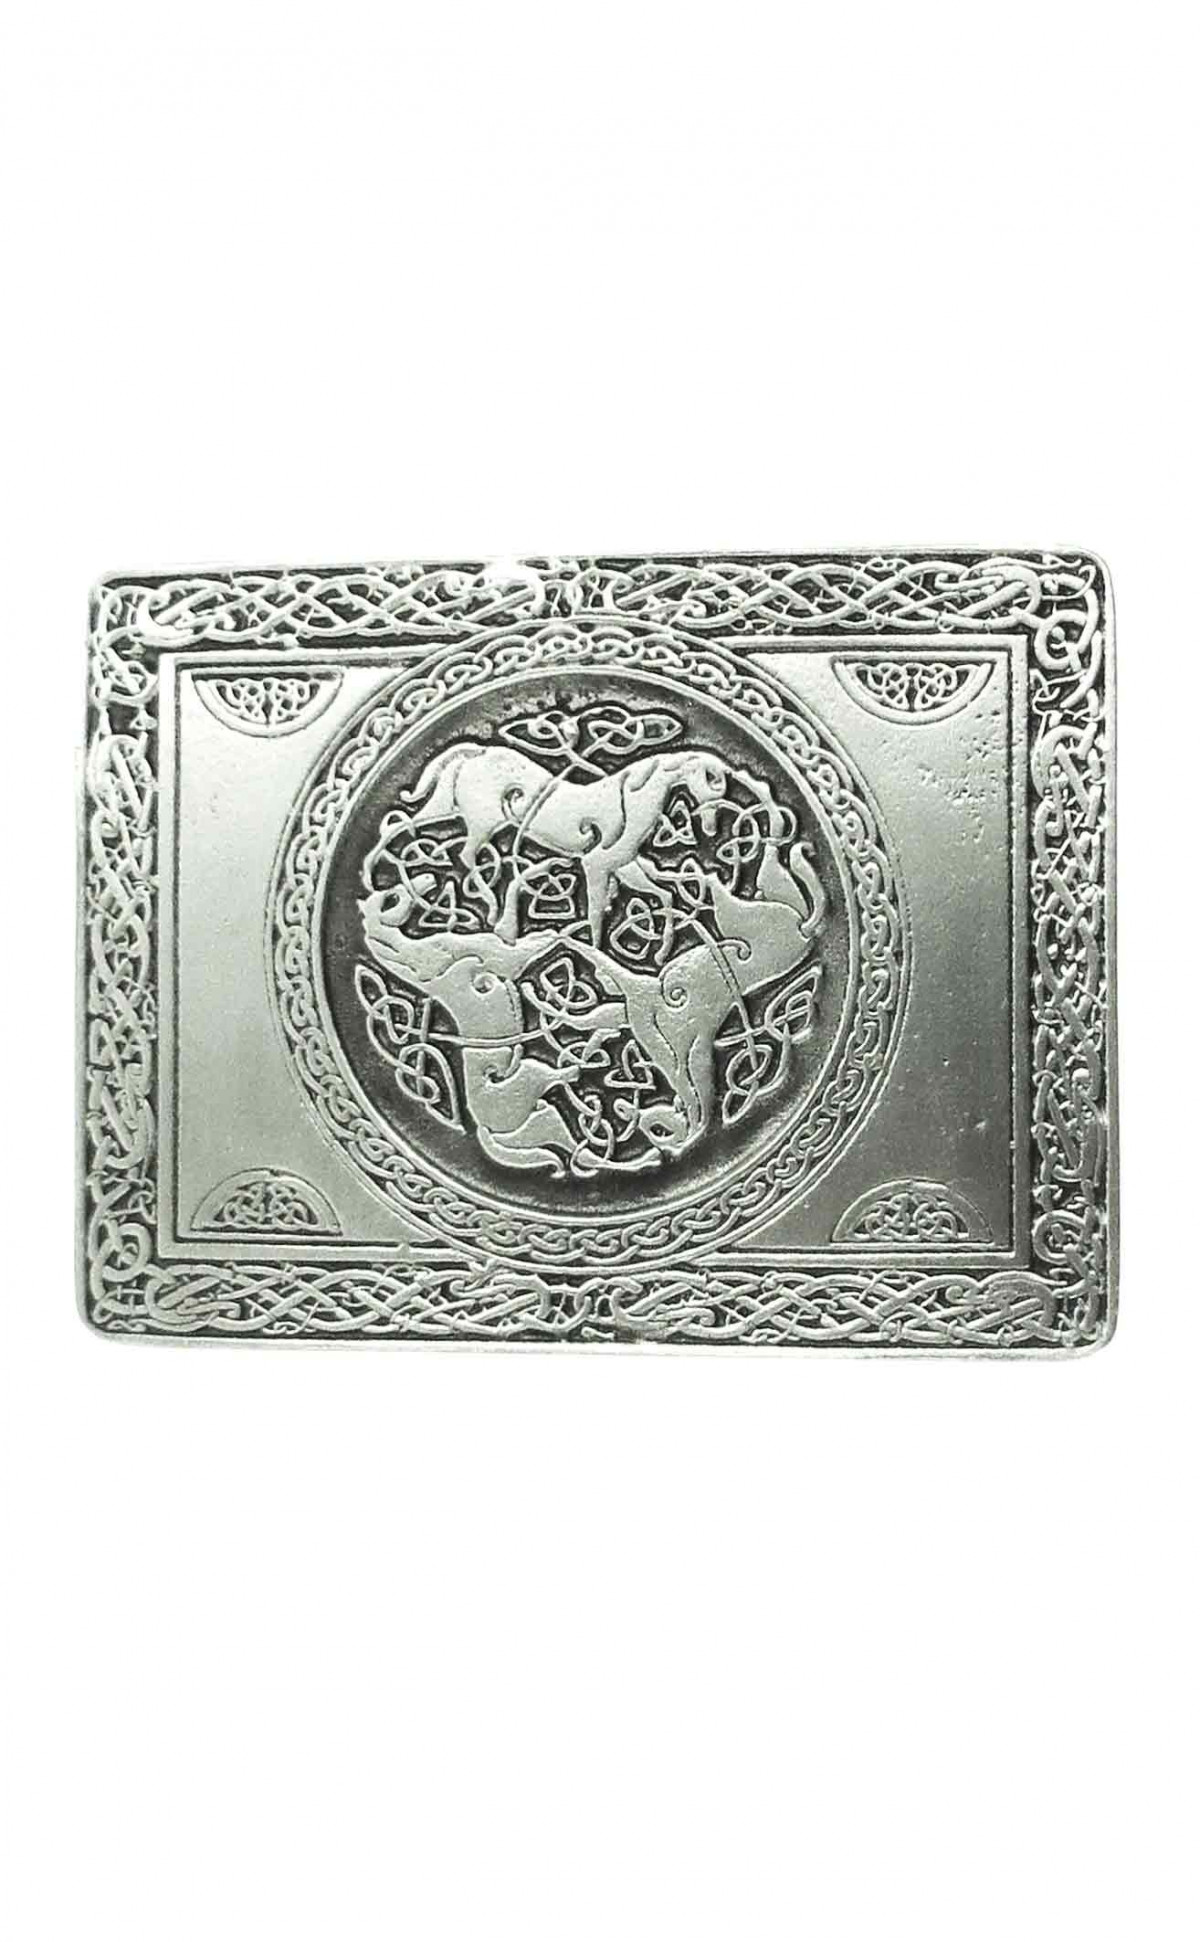 gaeli-sr_gaeli_antique_silver_wallace_buckle_1